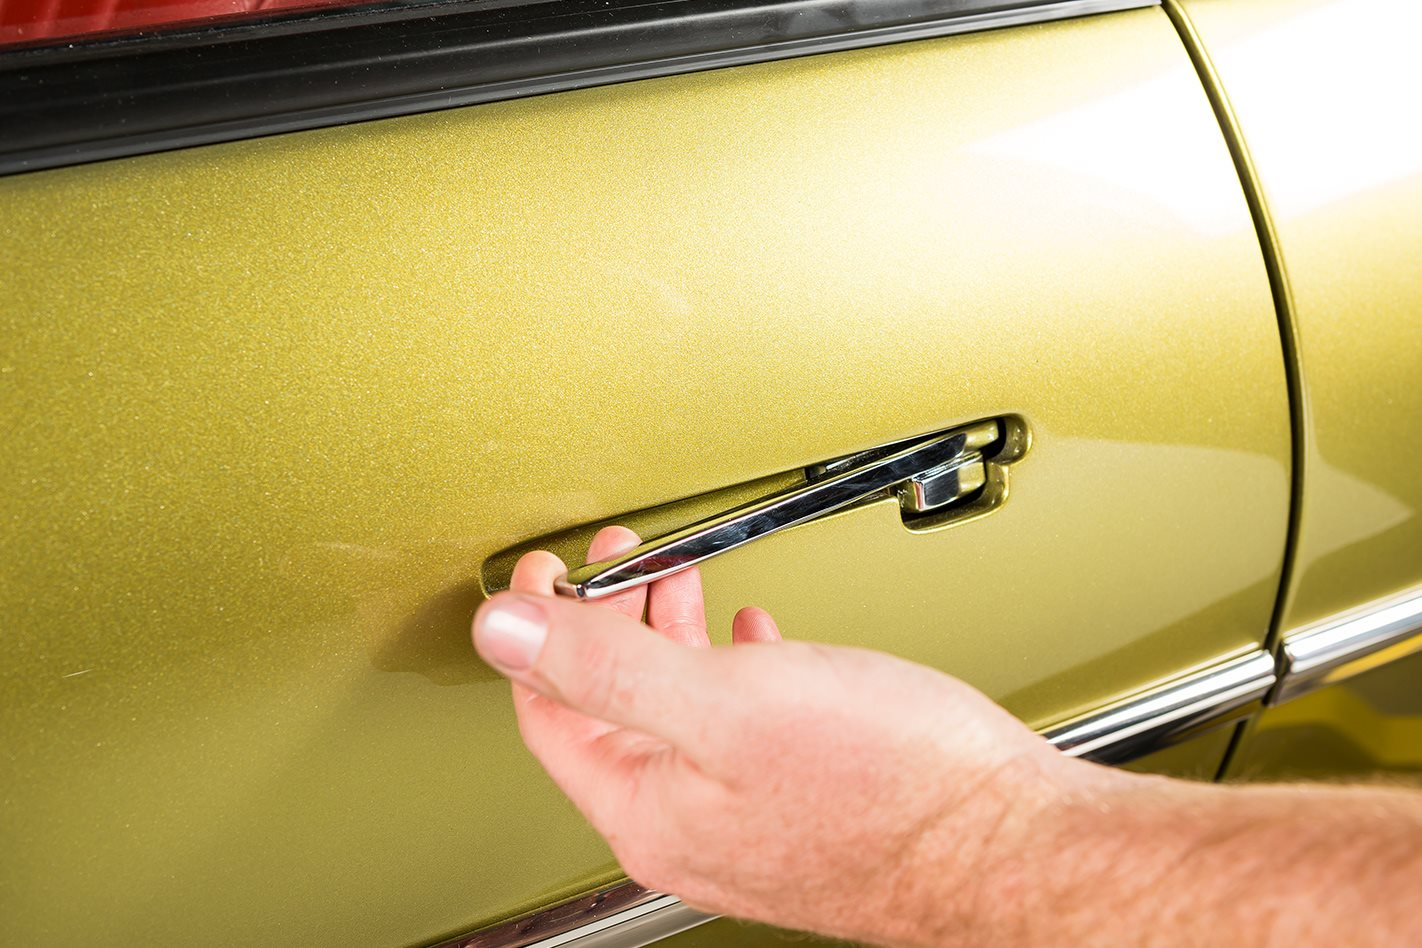 Holden FB Tailspin door handle